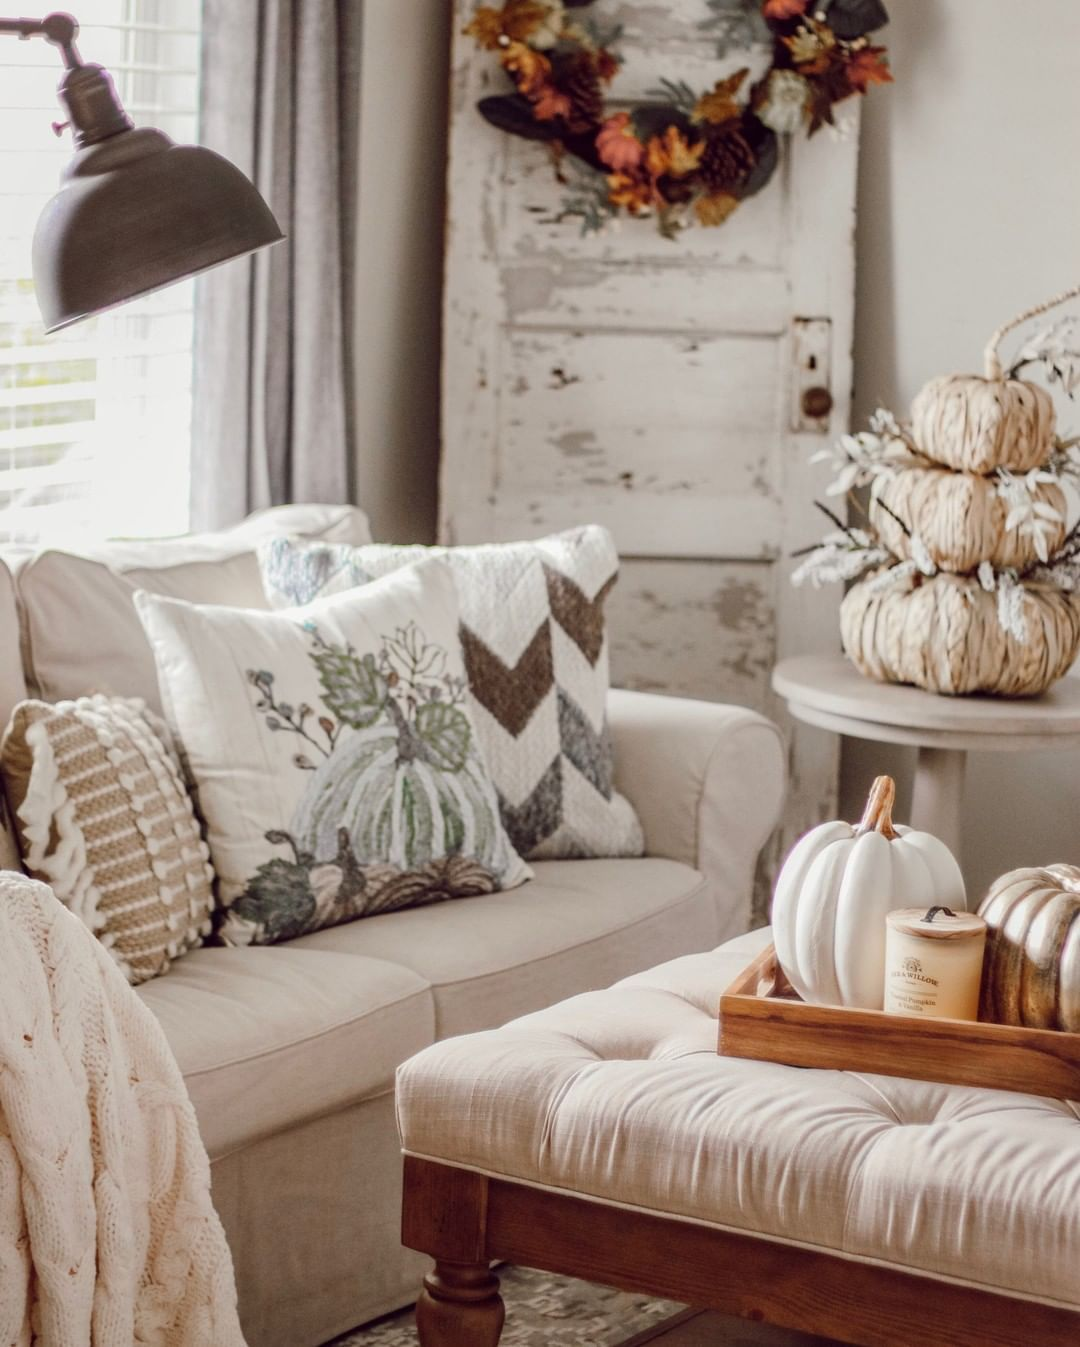 Bed Bath Beyond On Instagram Raise Your Hand If A Cozy Fall Refresh Is On Your Mind For The New Season Fall Room Decor Bed Bath And Beyond Fall